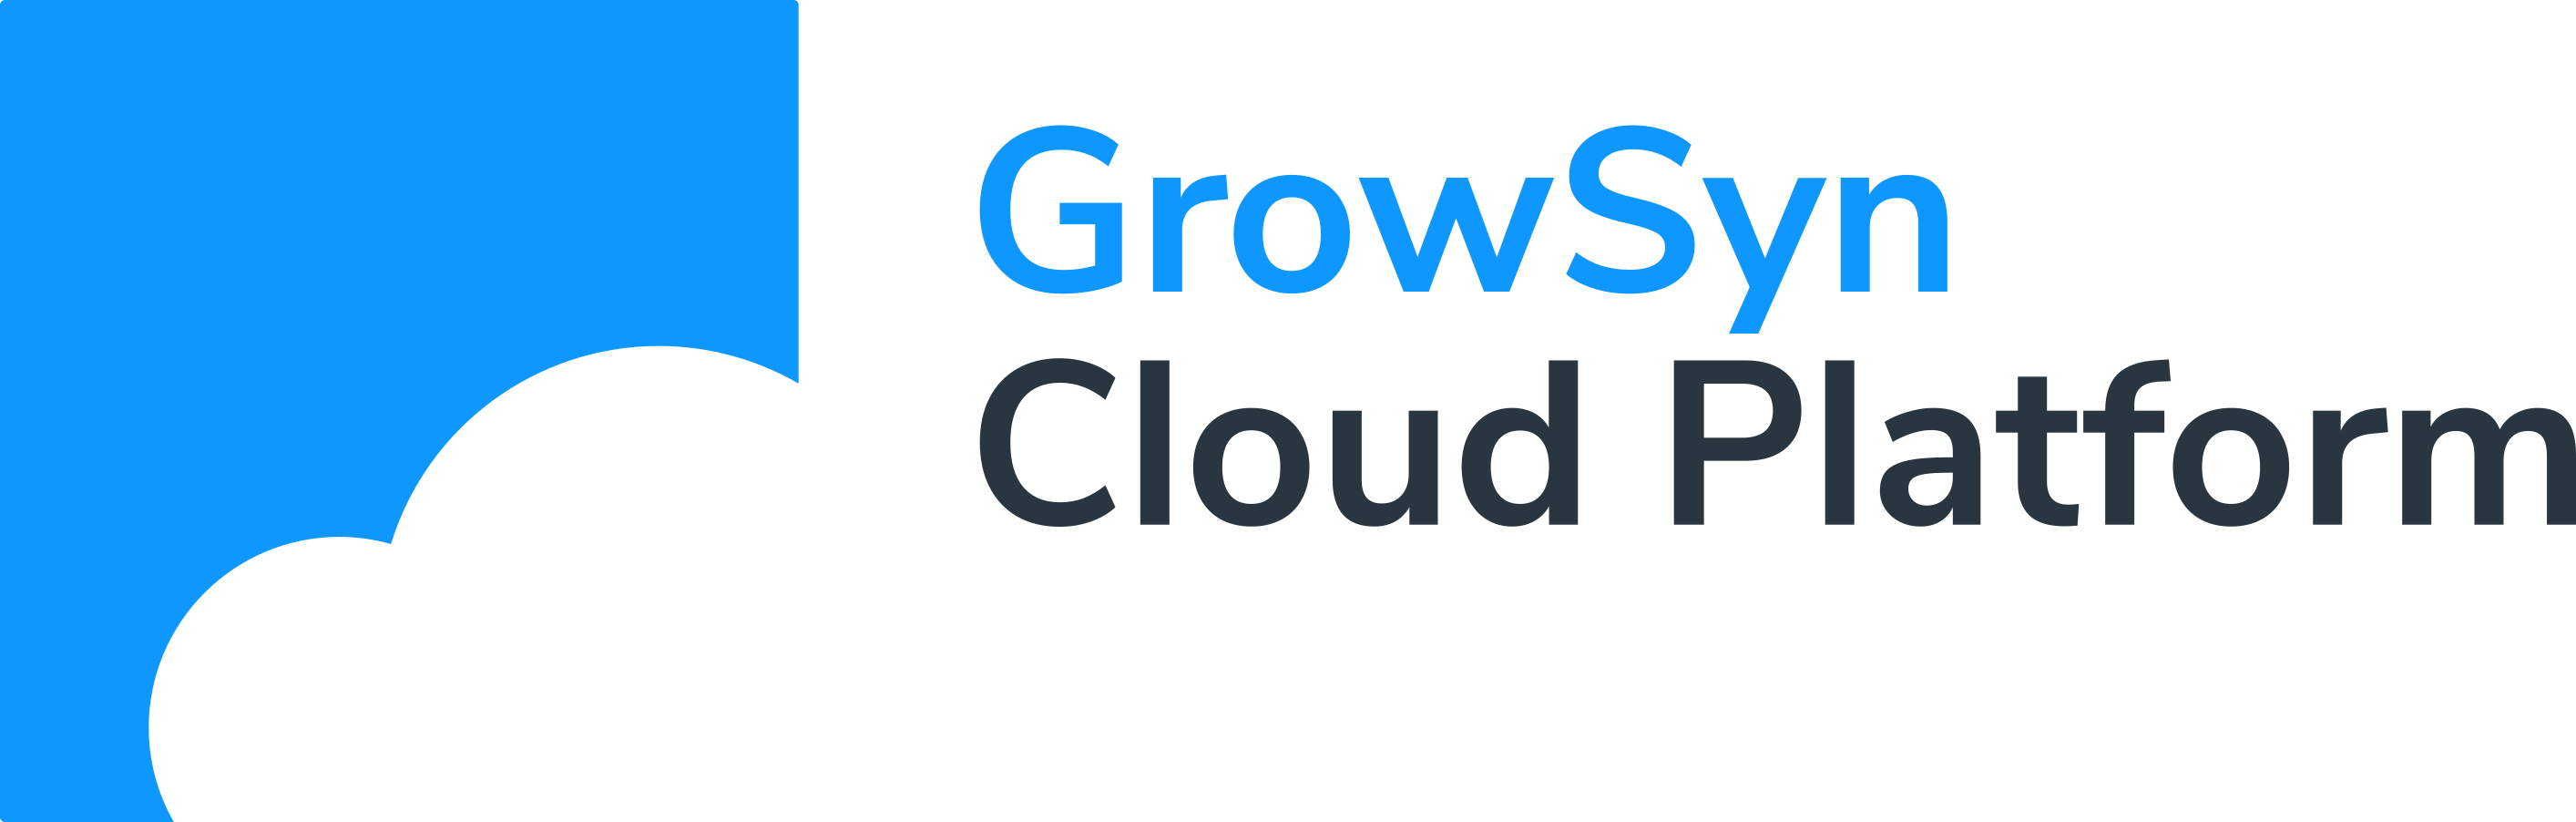 Growsyn Cloud Platform